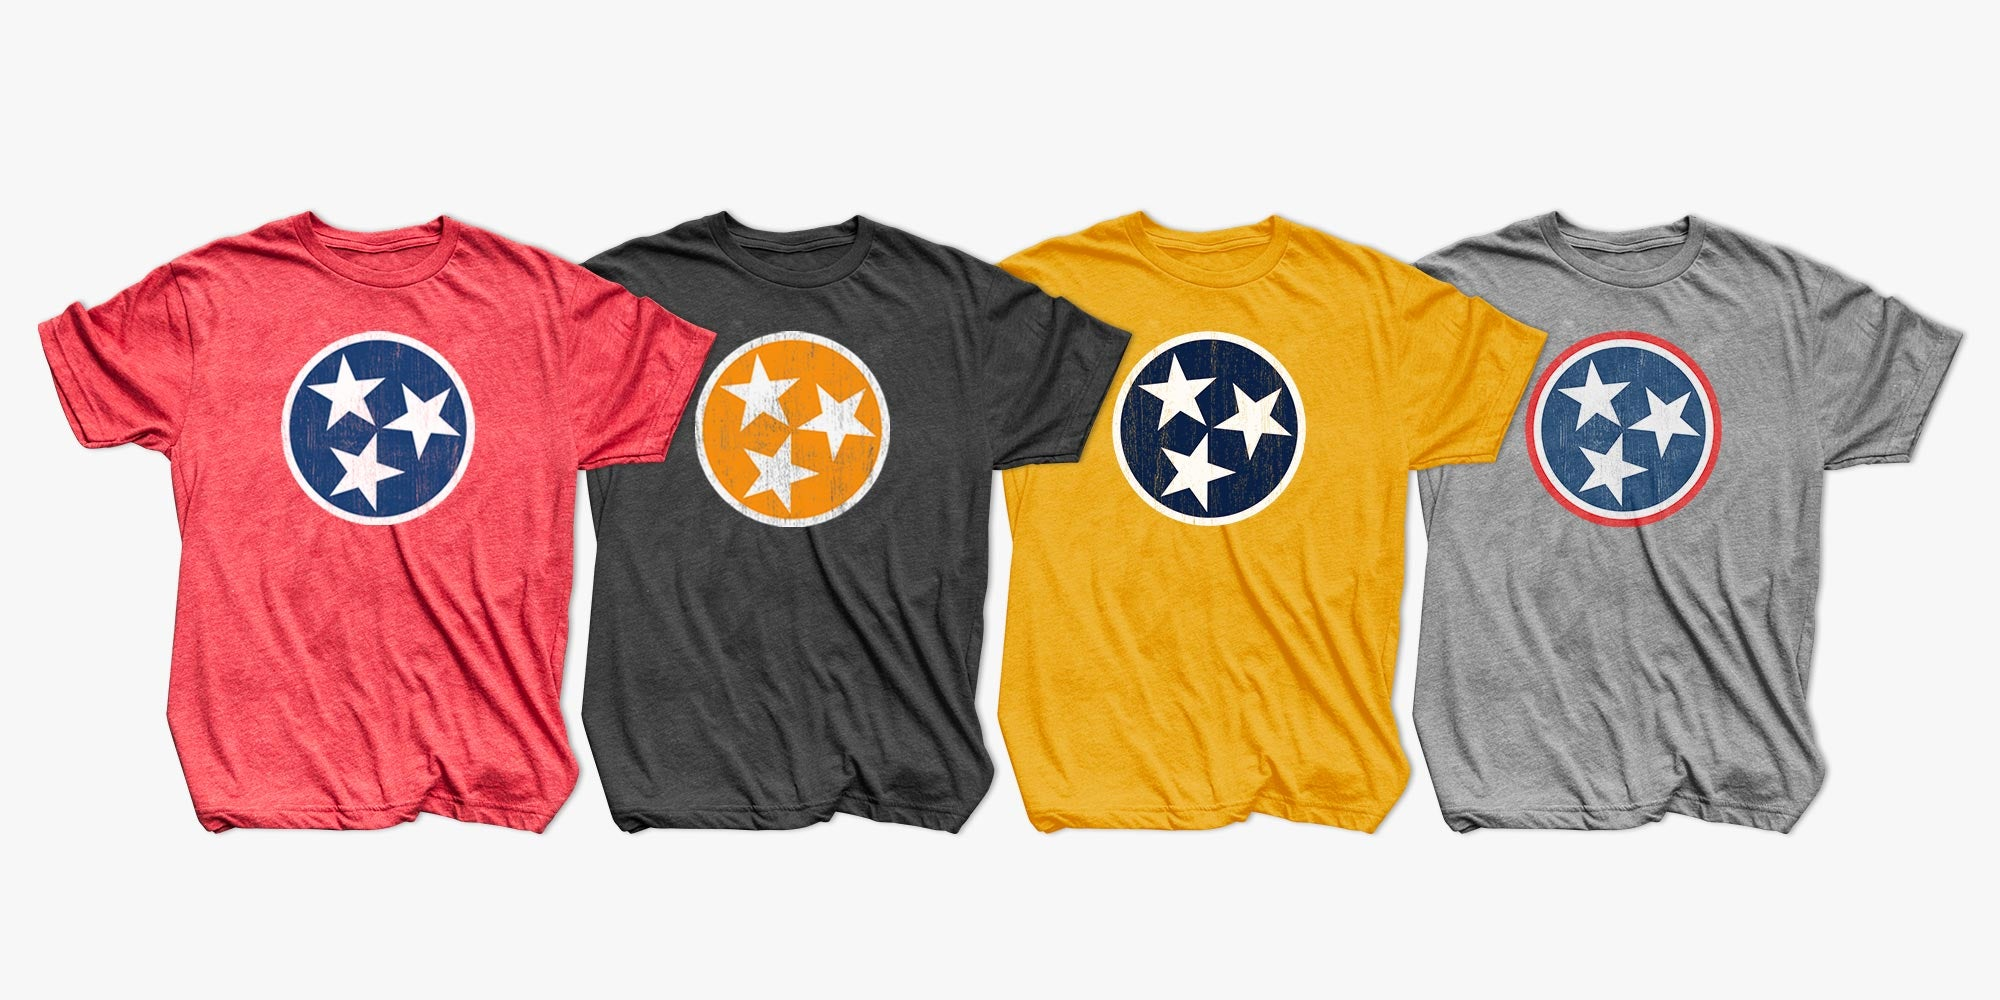 Wholesale Tennessee T-shirts Wholesale Tennessee Tristar Shirts Wholesale Tennessee Apparel